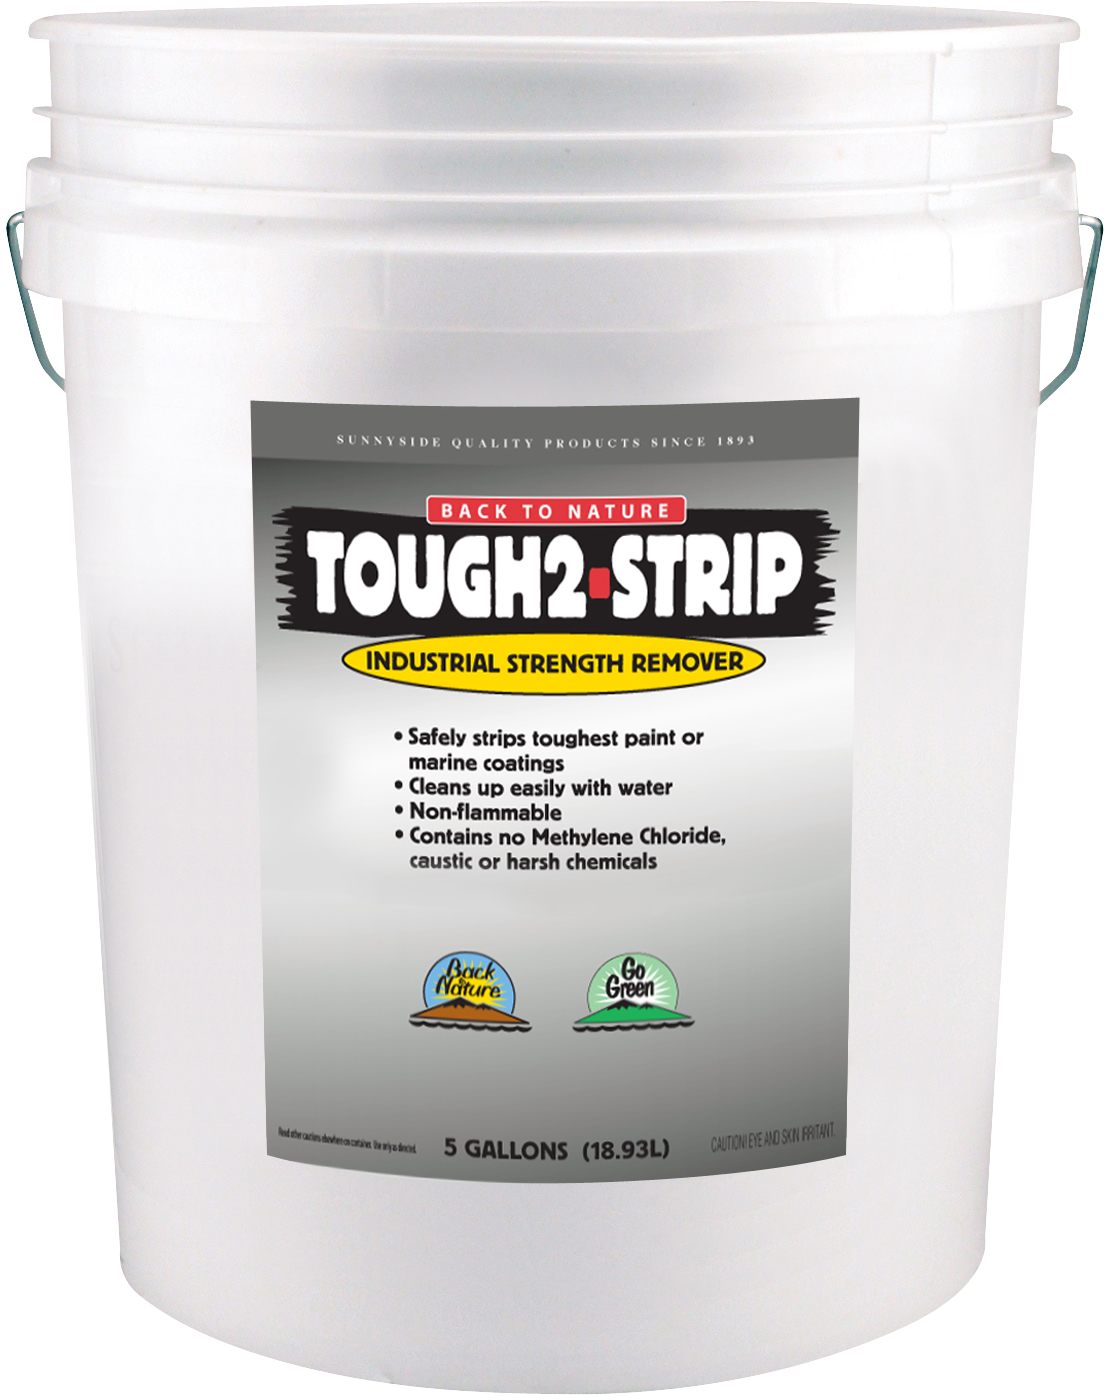 BACK TO NATURE TOUGH-2-STRIP PAINT REMOVER Product Image